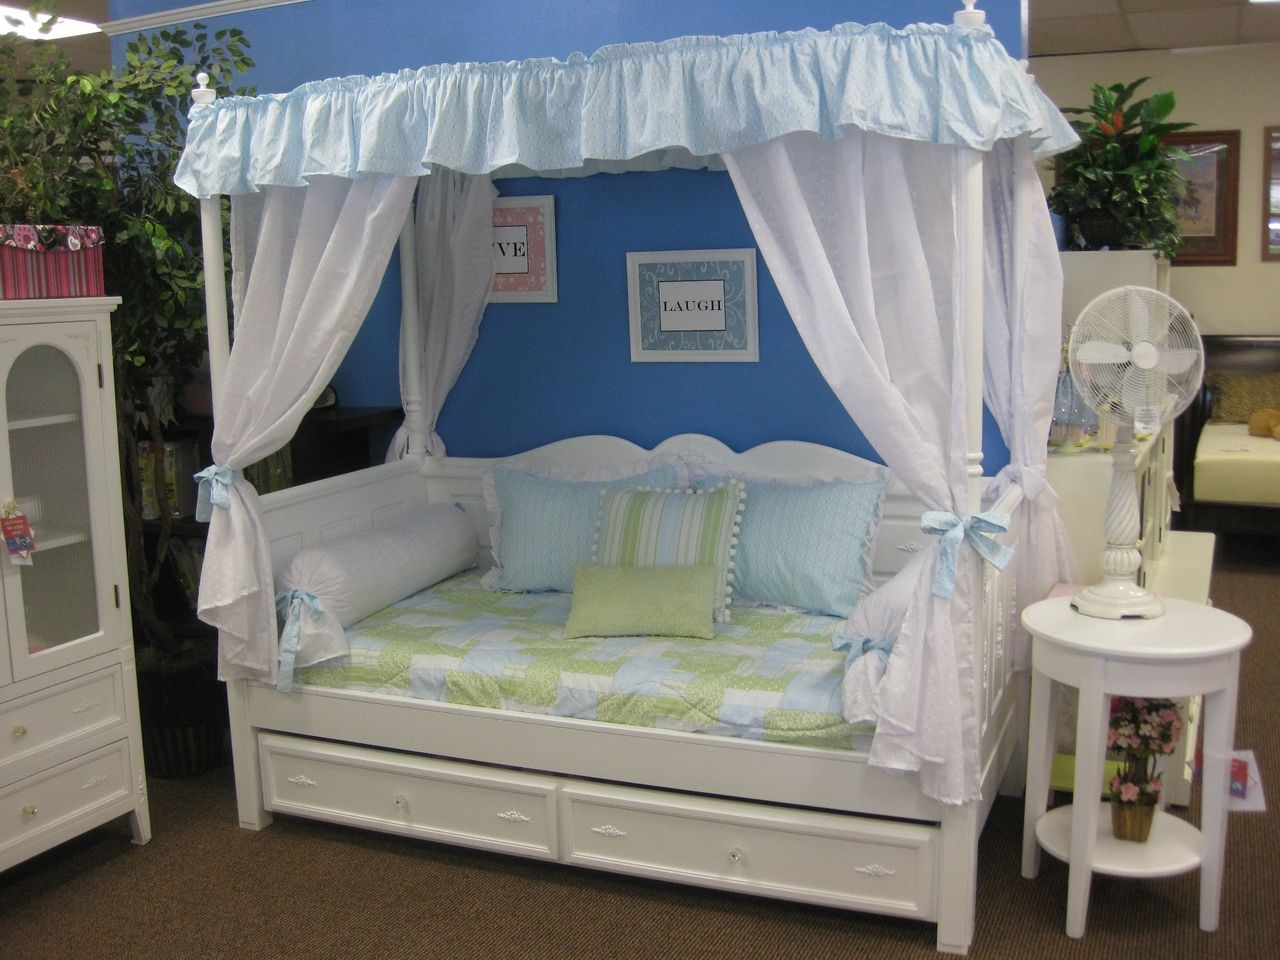 Madison Canopy Daybed is designed with soft scalloped edges and delicate floral appliqués. & Beds Plus Kids Stuff - Madison Canopy Daybed $999.00 (http://www ...